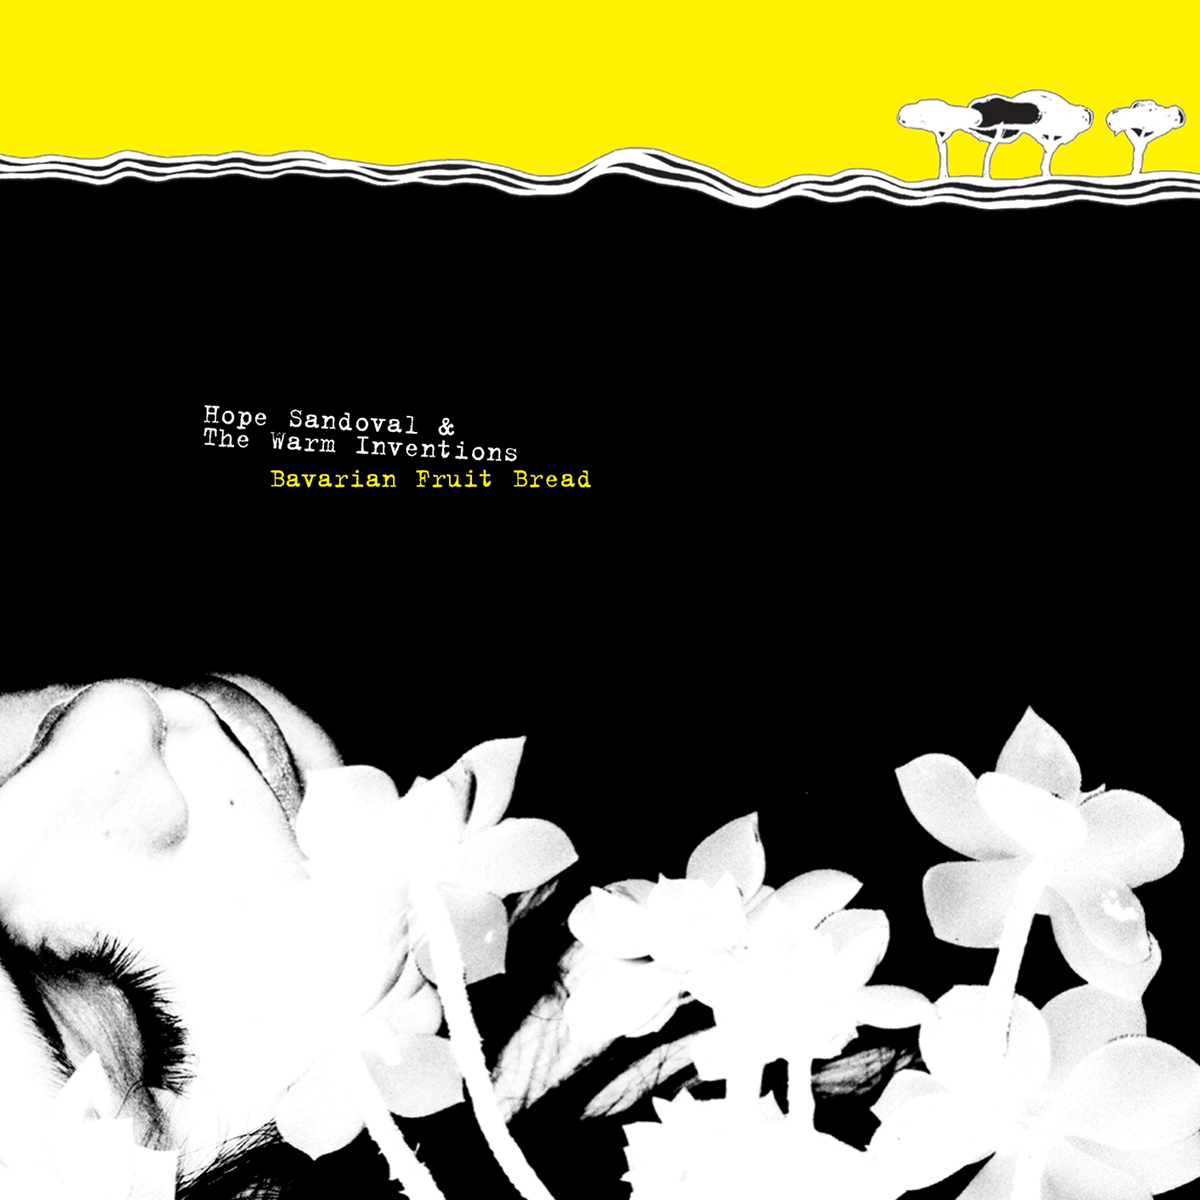 Hope Sandoval and The Warm Intentions - Bavarian Fruit Bread CD